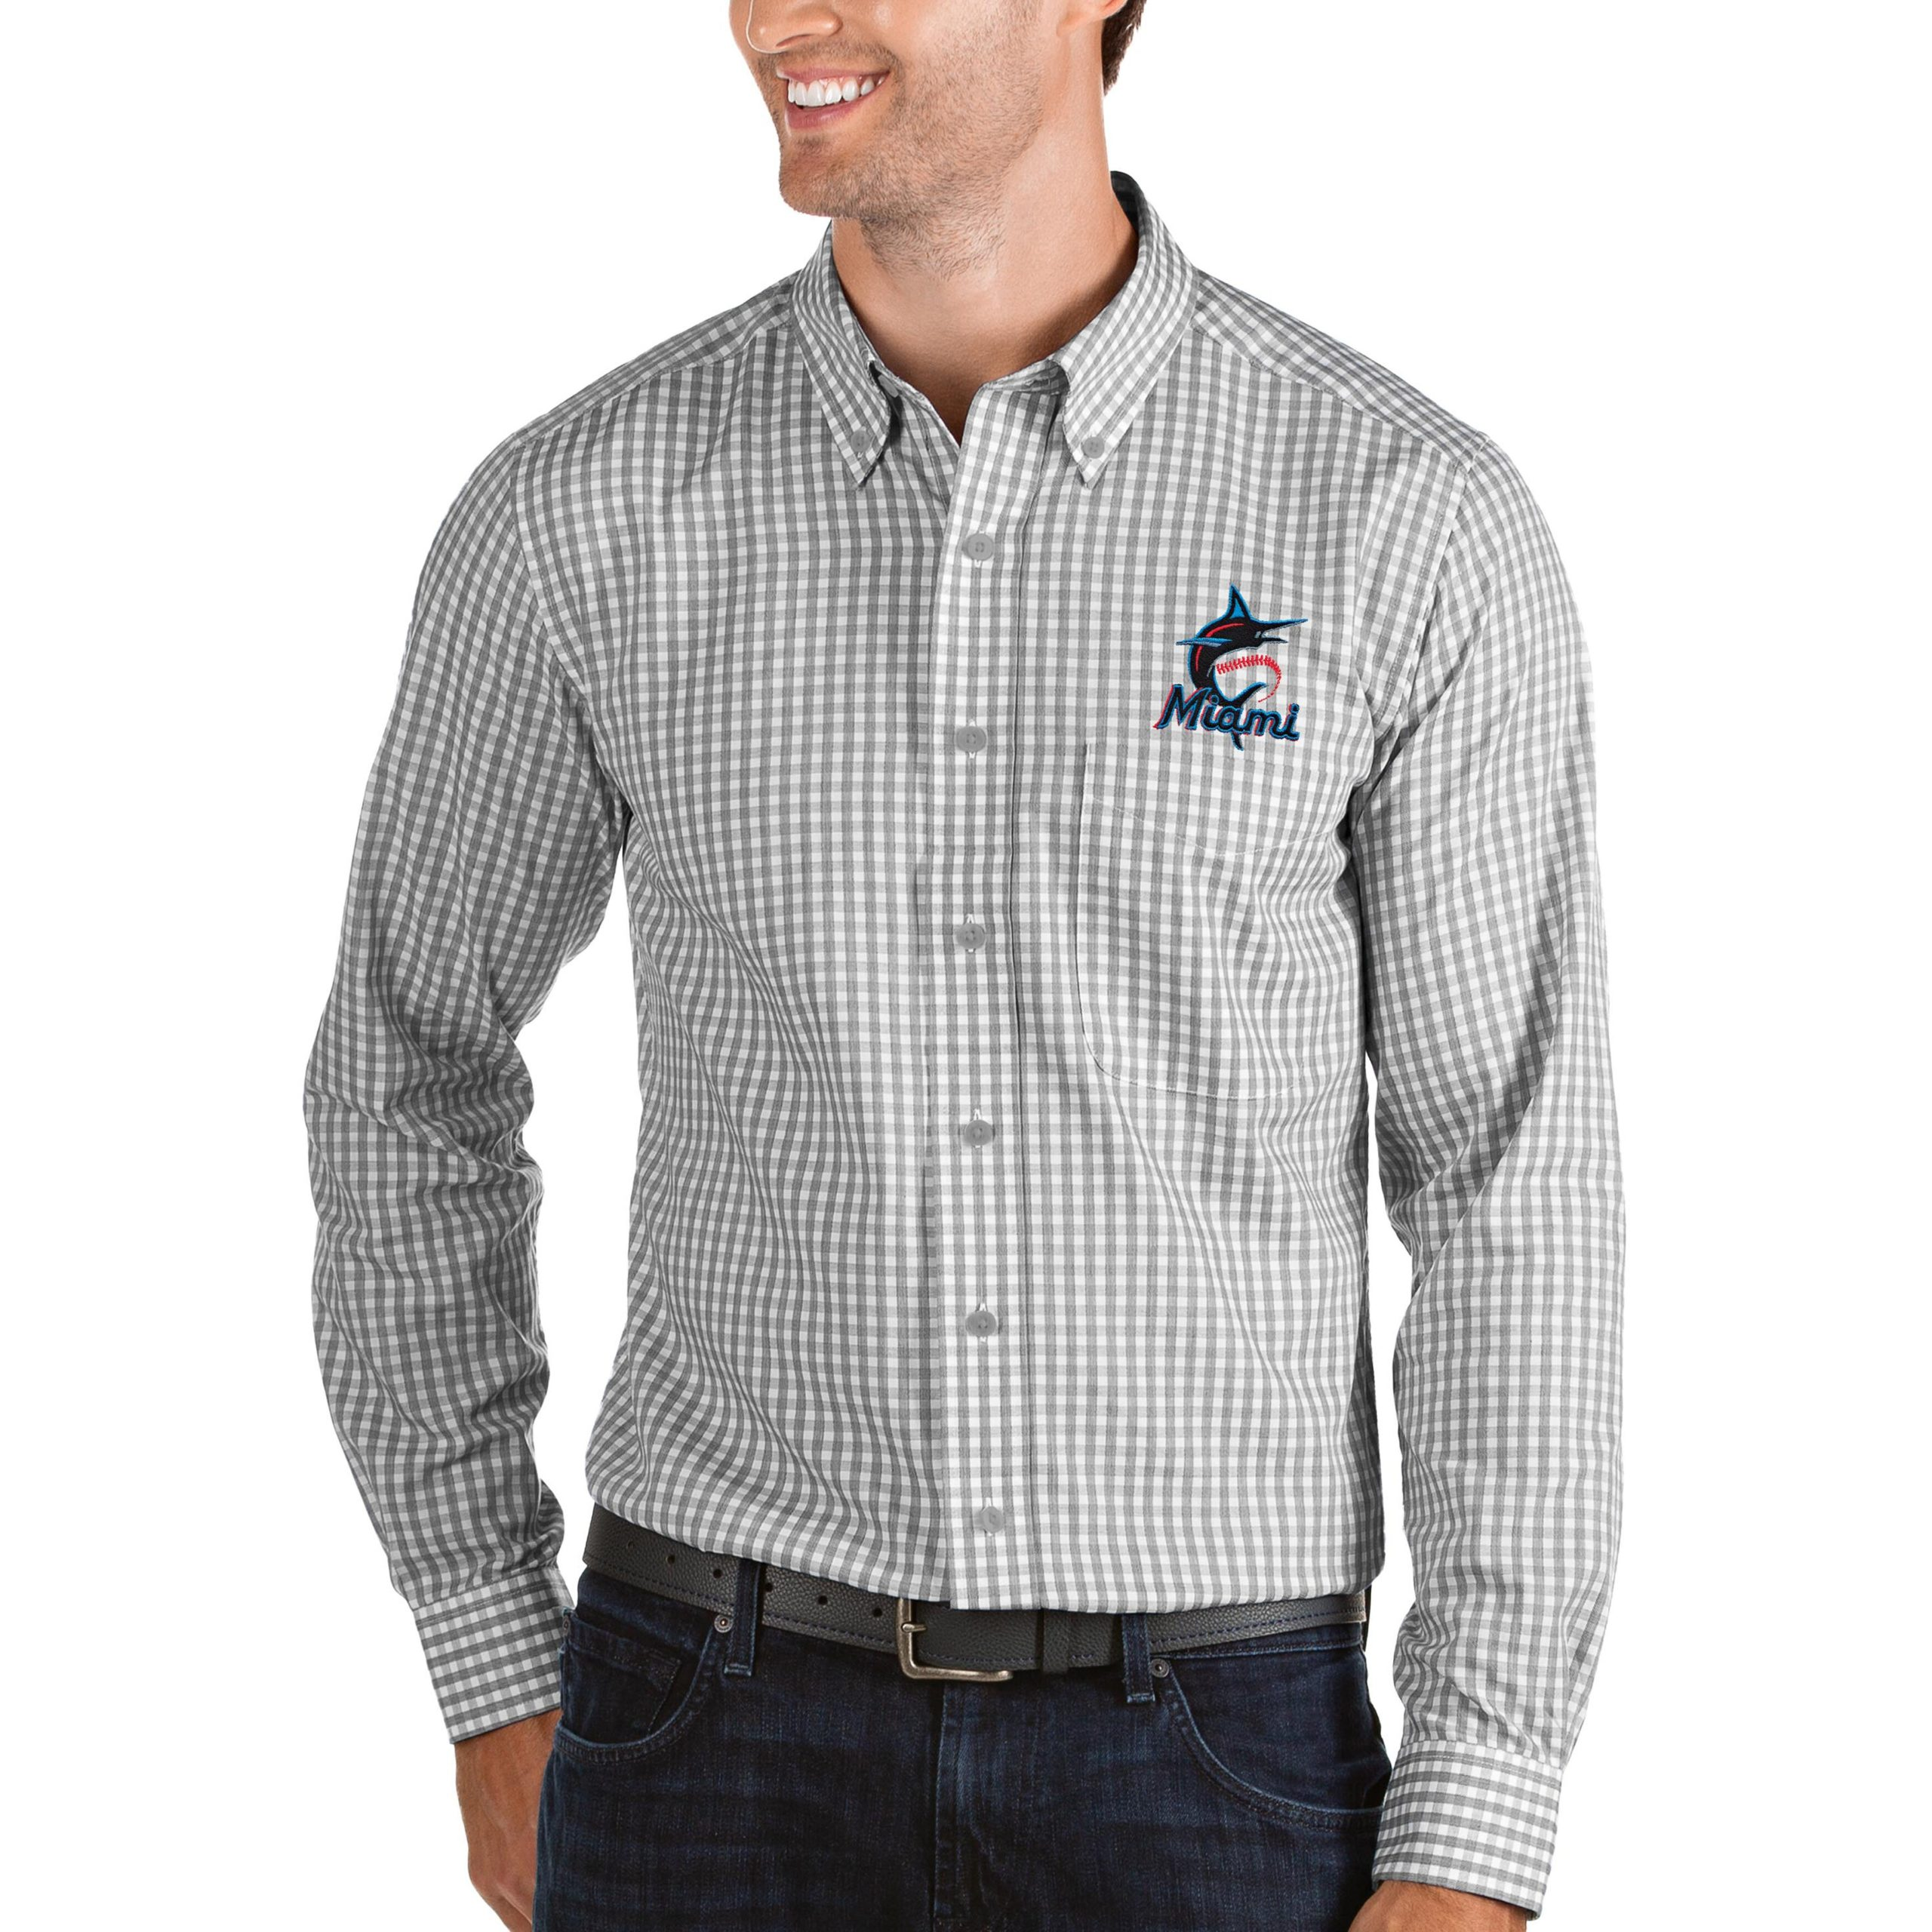 Miami Marlins Antigua Structure Button-Down Long Sleeve Shirt - Steel/White